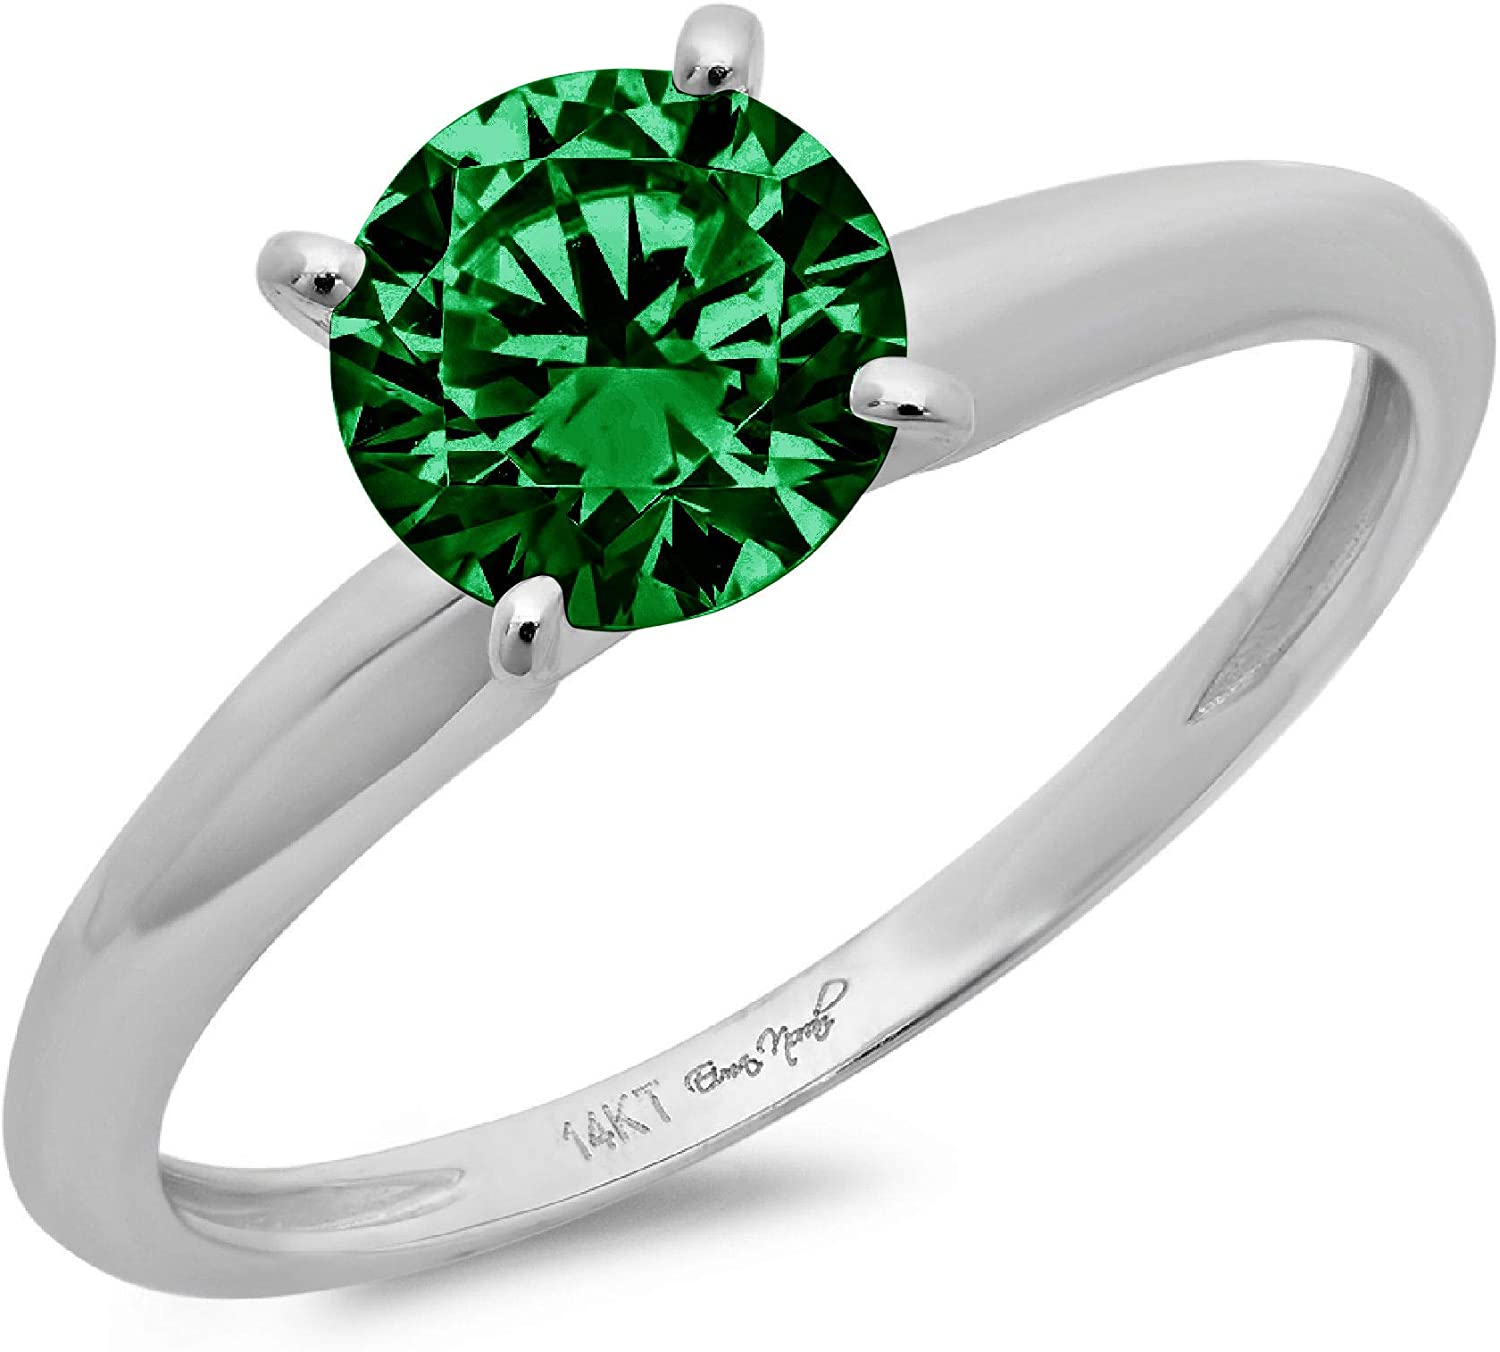 2.4ct Brilliant Round Cut Solitaire Flawless Simulated CZ Green Emerald Ideal VVS1 4-Prong Engagement Wedding Bridal Promise Anniversary Designer Ring in Solid 14k White Gold for Women